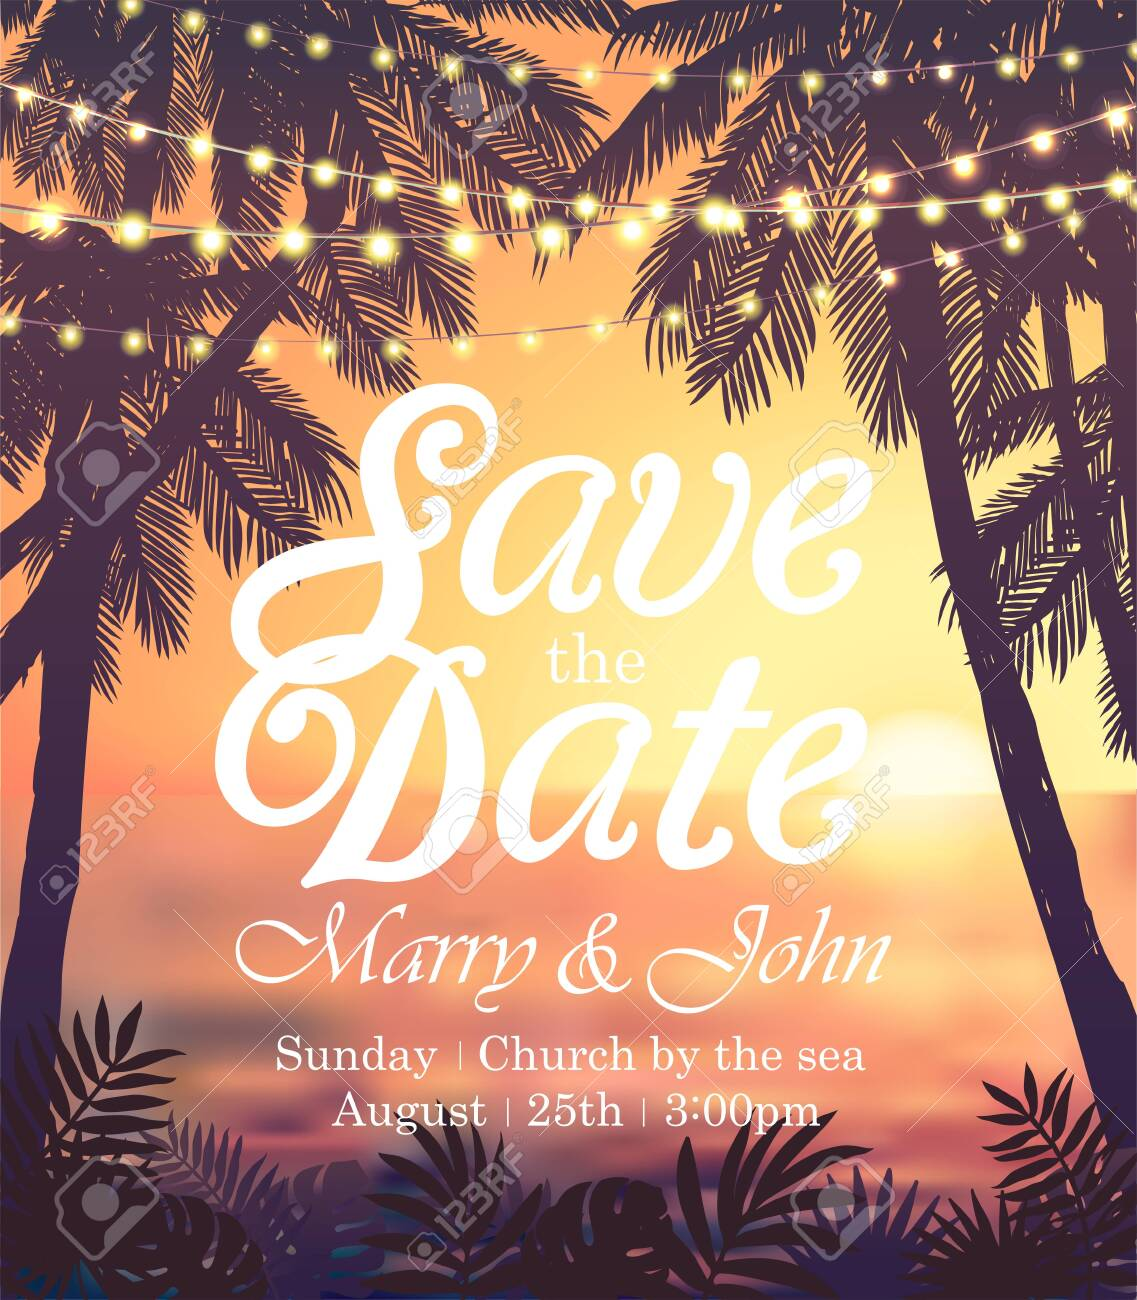 Hanging decorative holiday lights for a beach party invitation. Inspiration card for wedding, date, birthday, travel advertising - 121160533